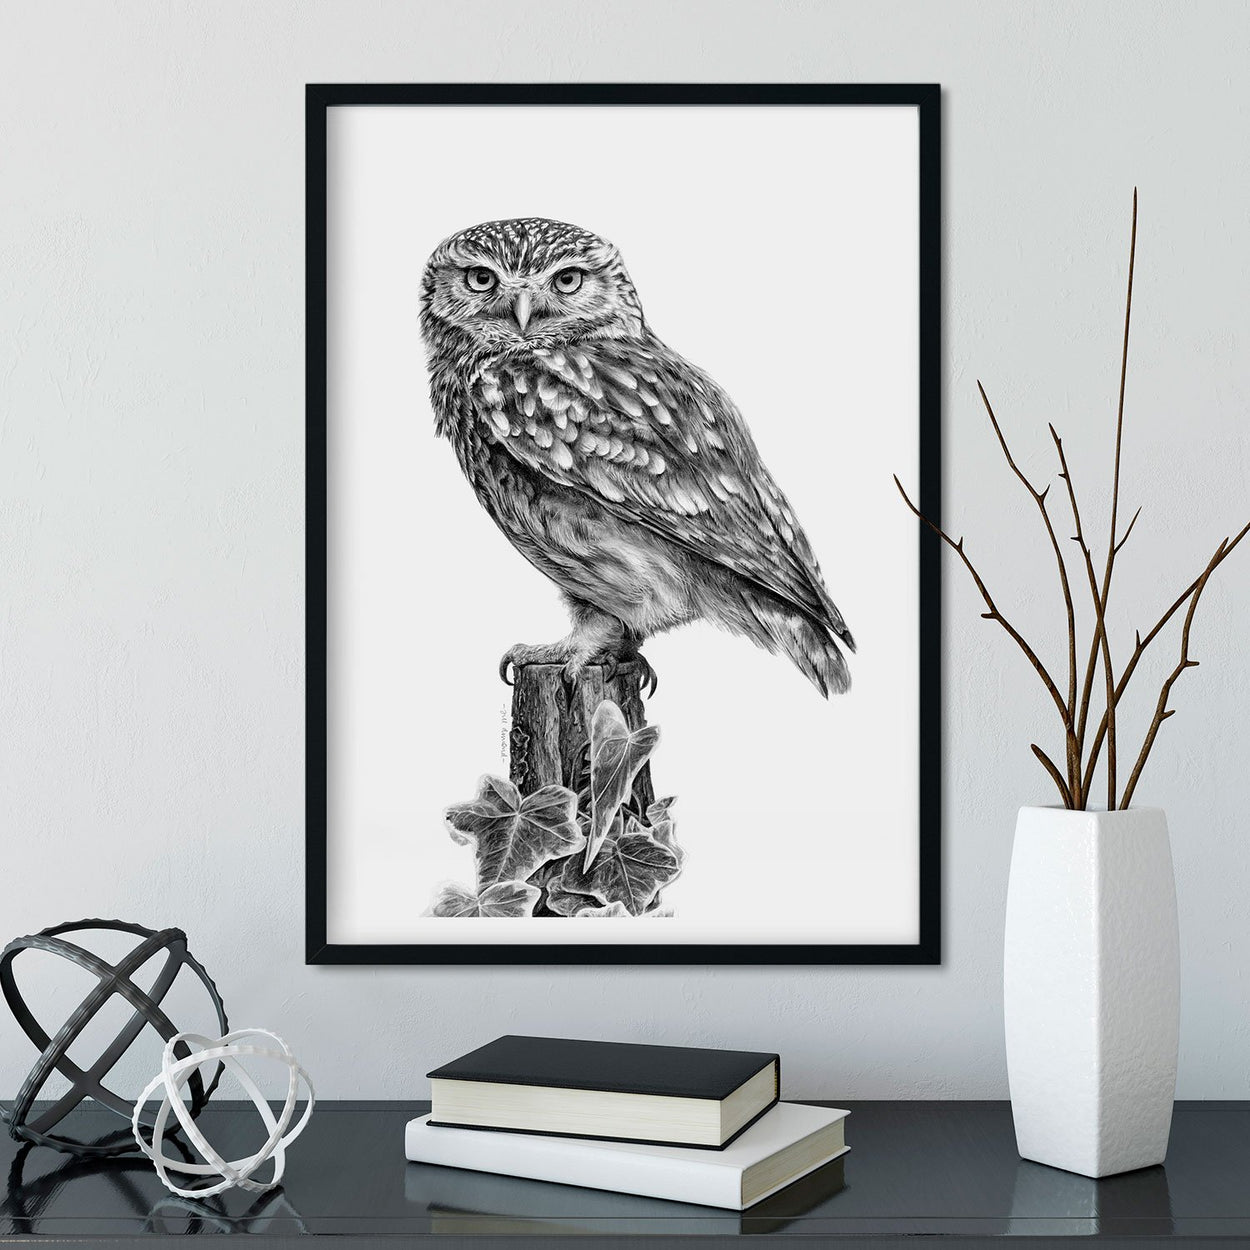 Little Owl Wall Art Frame - The Thriving Wild